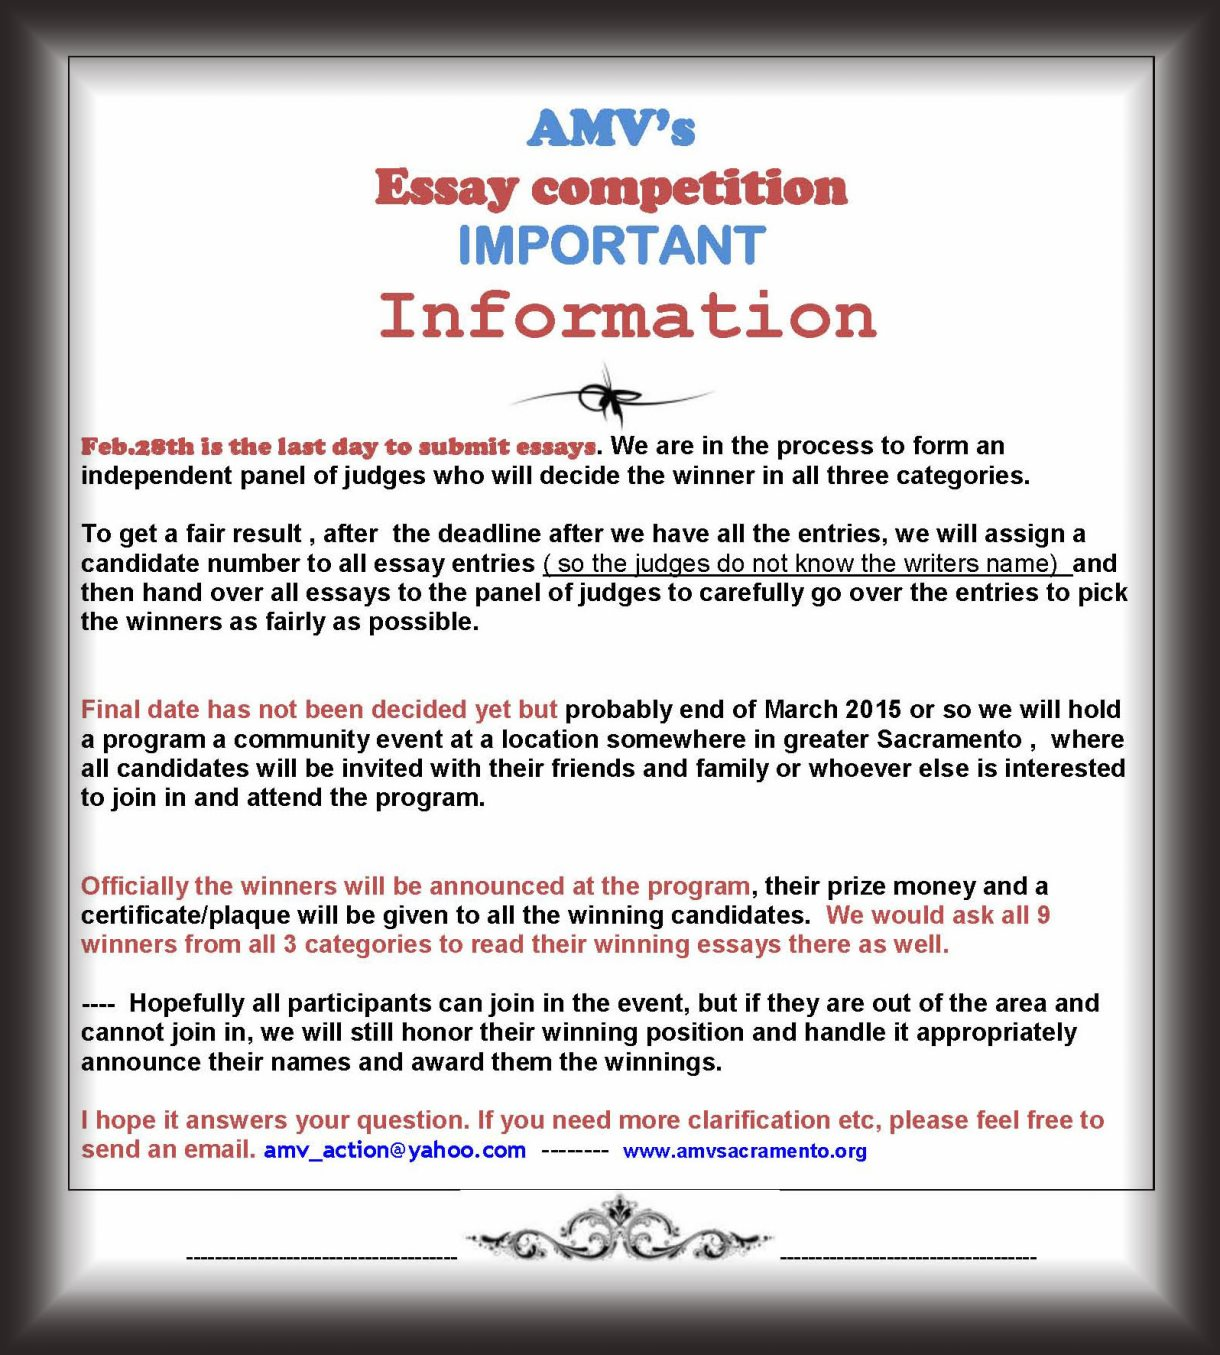 essay competition essay competitiion f